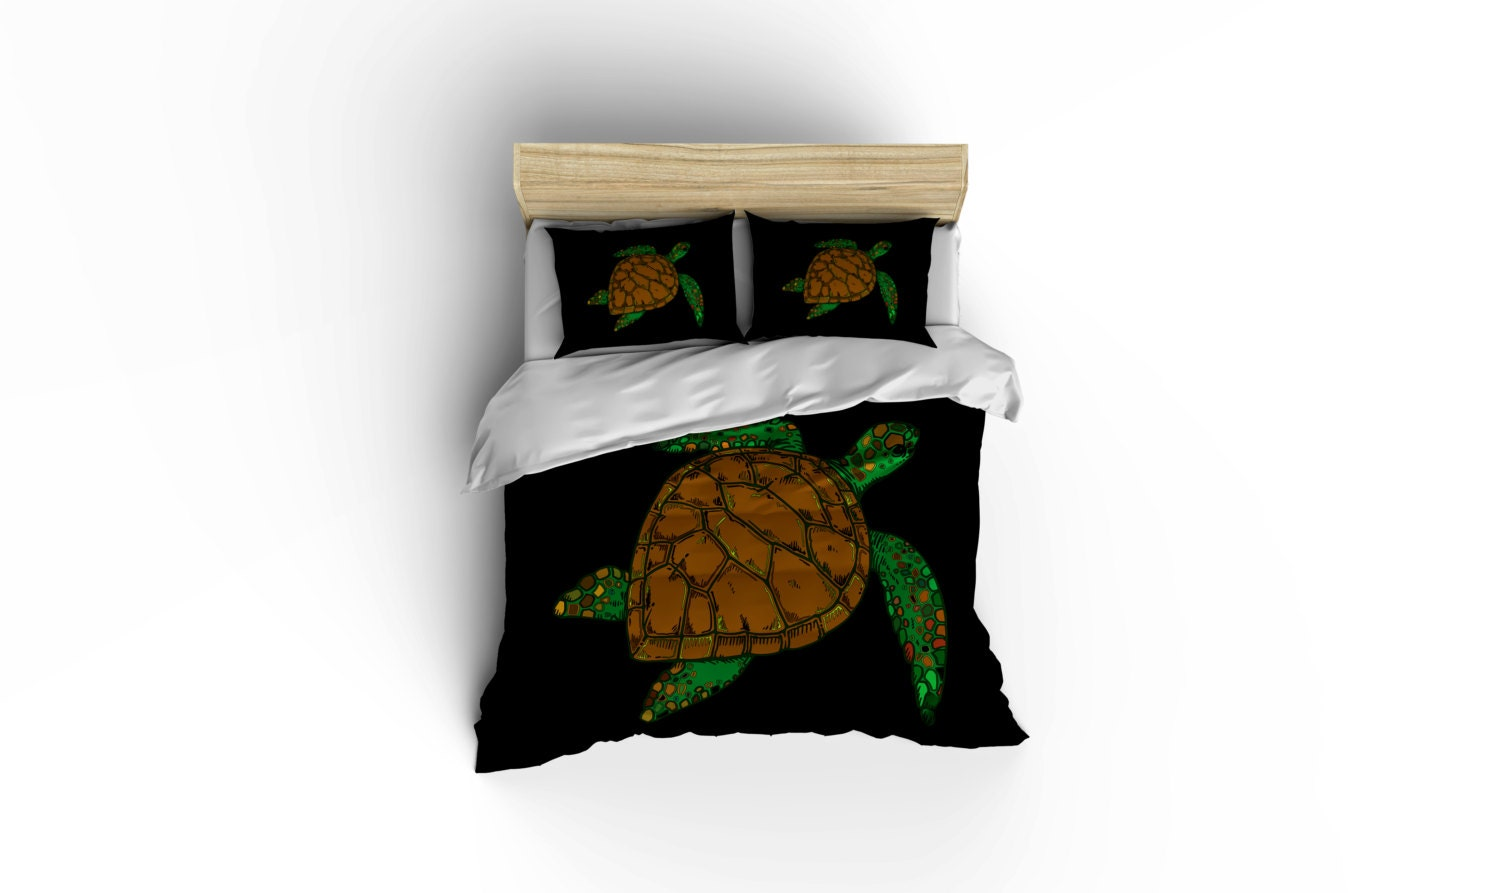 Sea Turtle Duvet Covers Home Decor Comforter Covers Bedroom